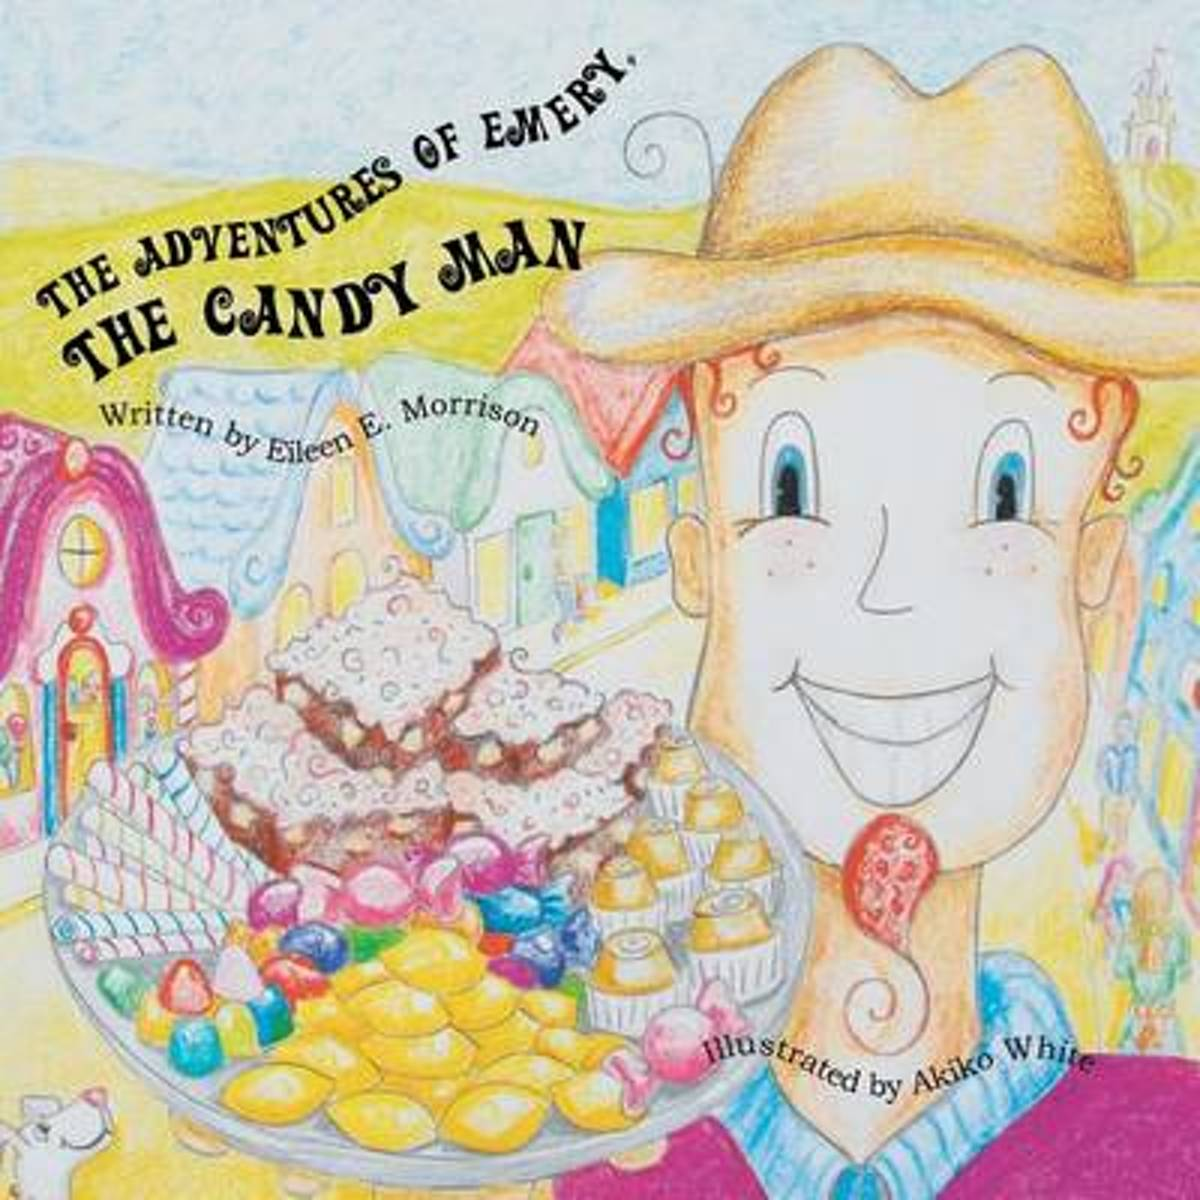 The Adventures of Emery the Candy Man